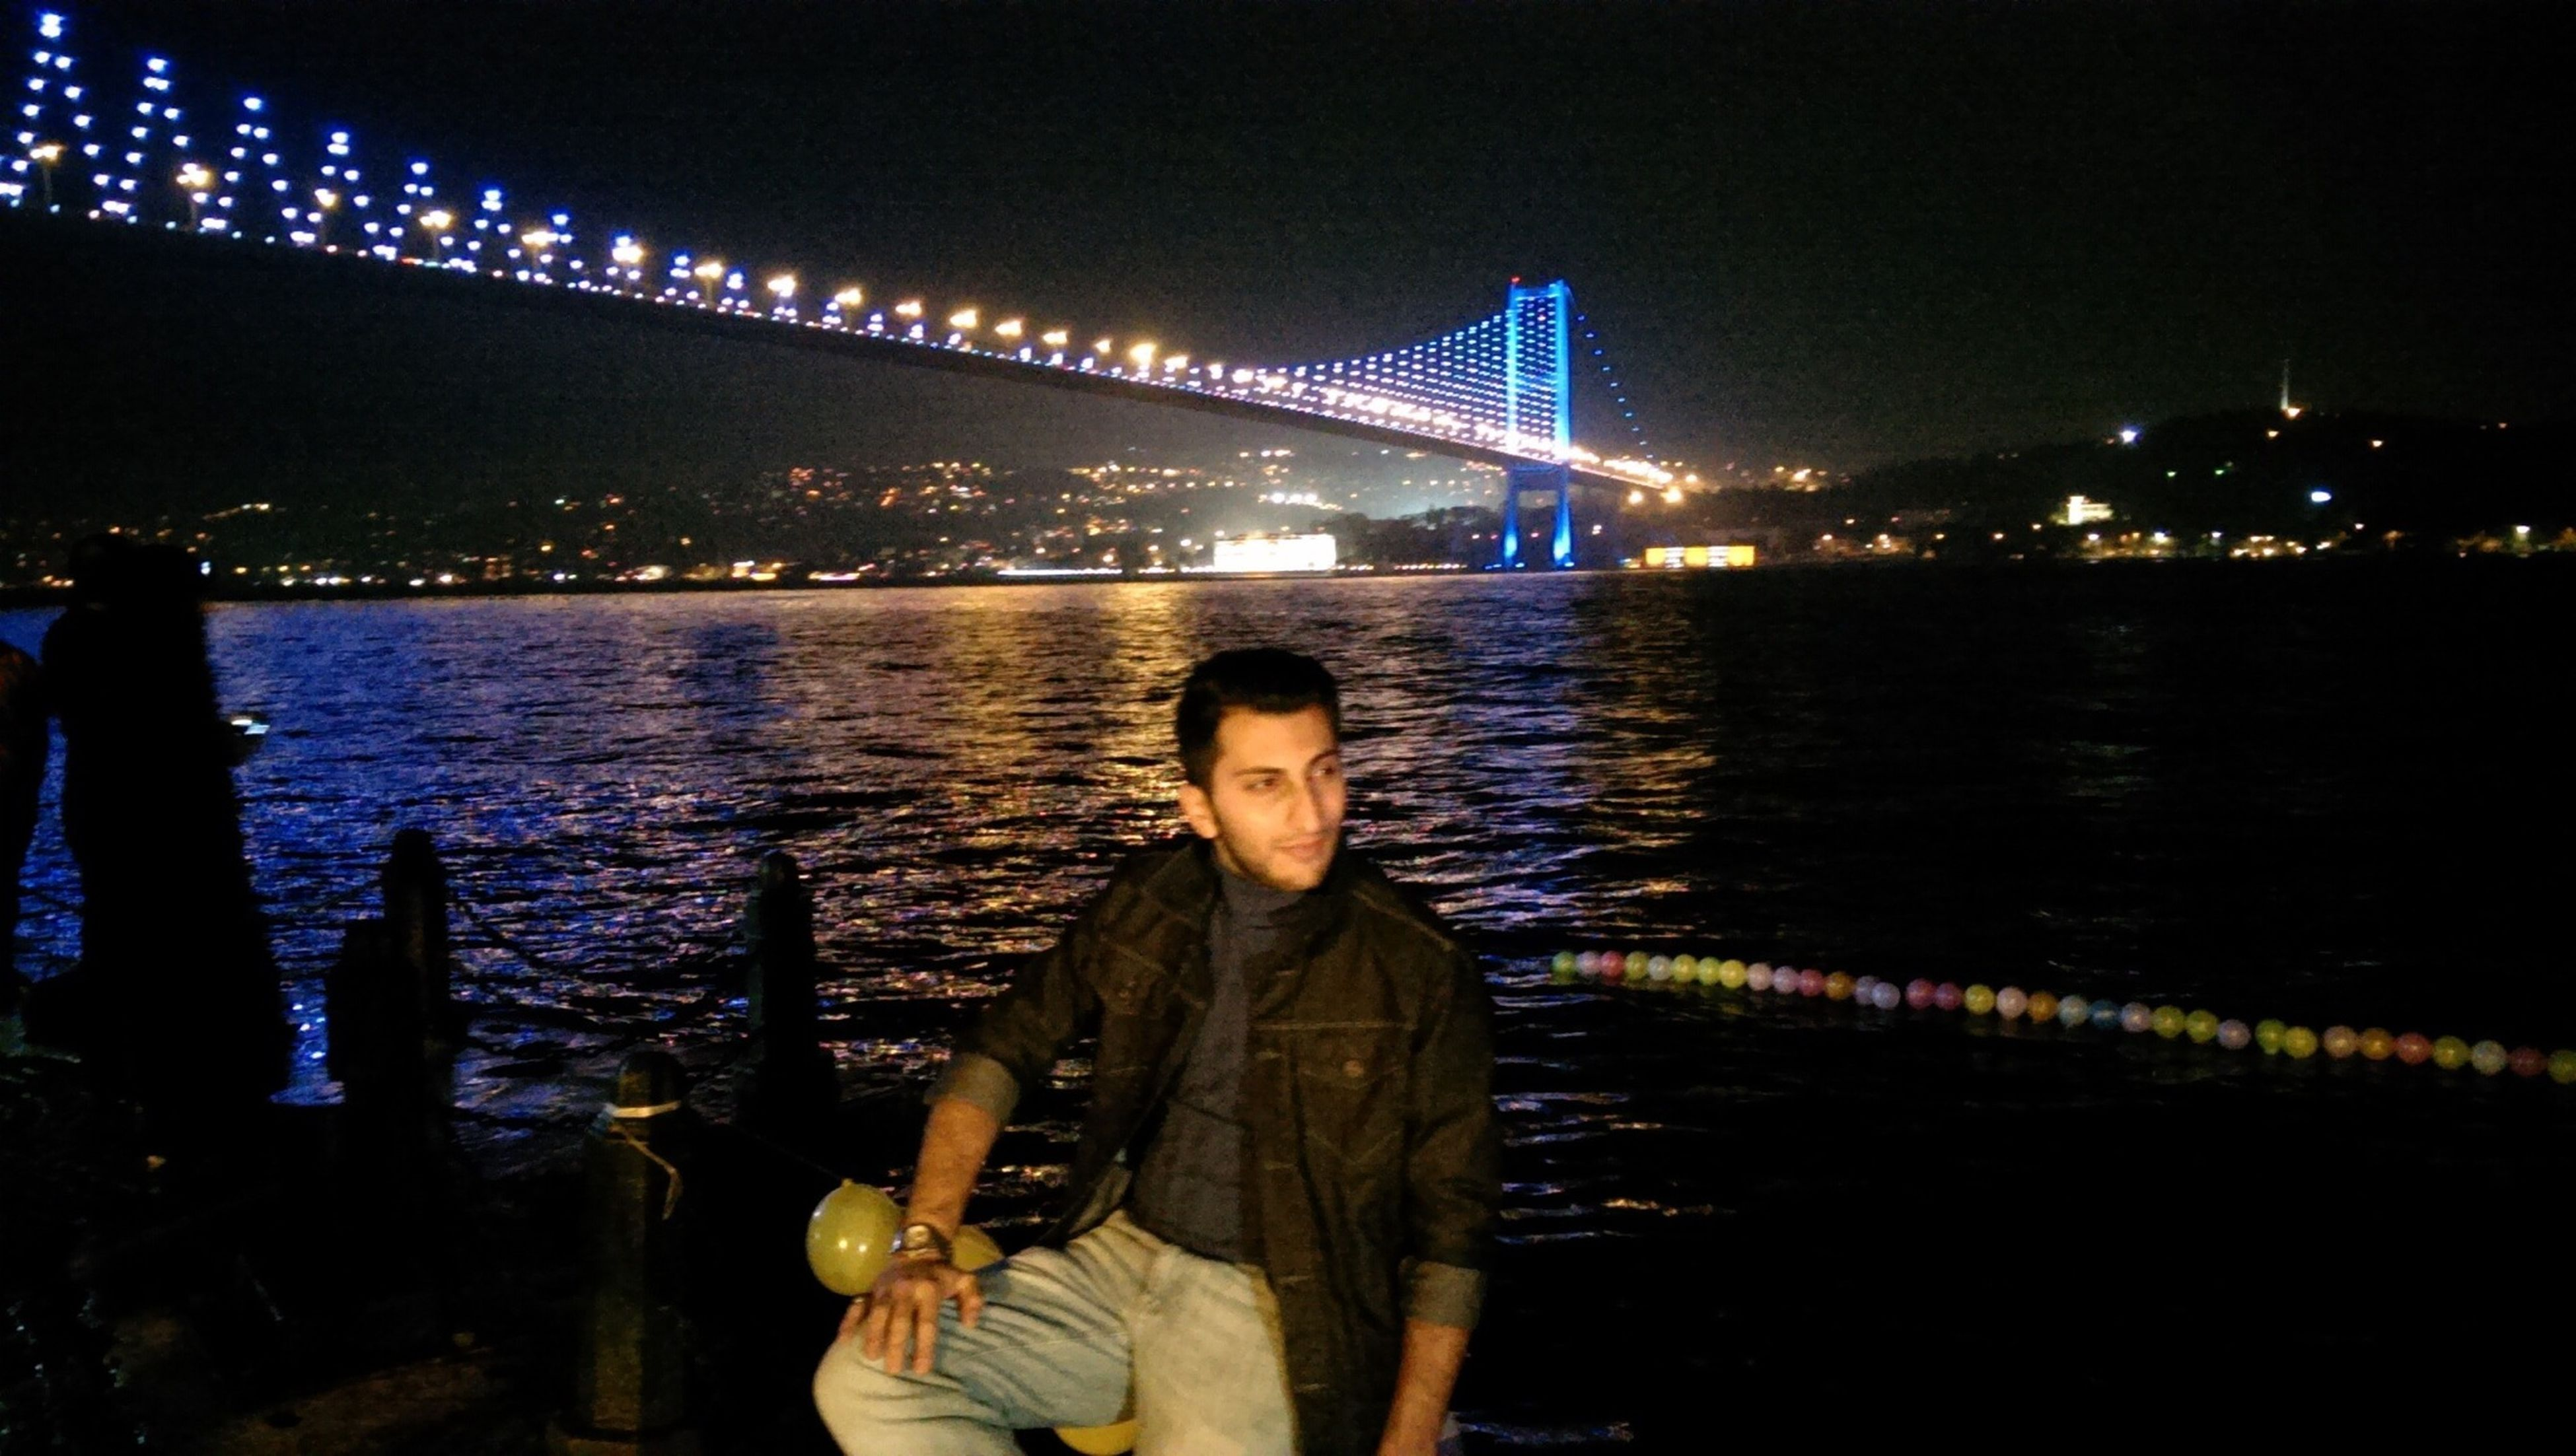 water, lifestyles, night, illuminated, architecture, built structure, standing, river, leisure activity, connection, young adult, casual clothing, bridge - man made structure, person, full length, young women, rear view, city